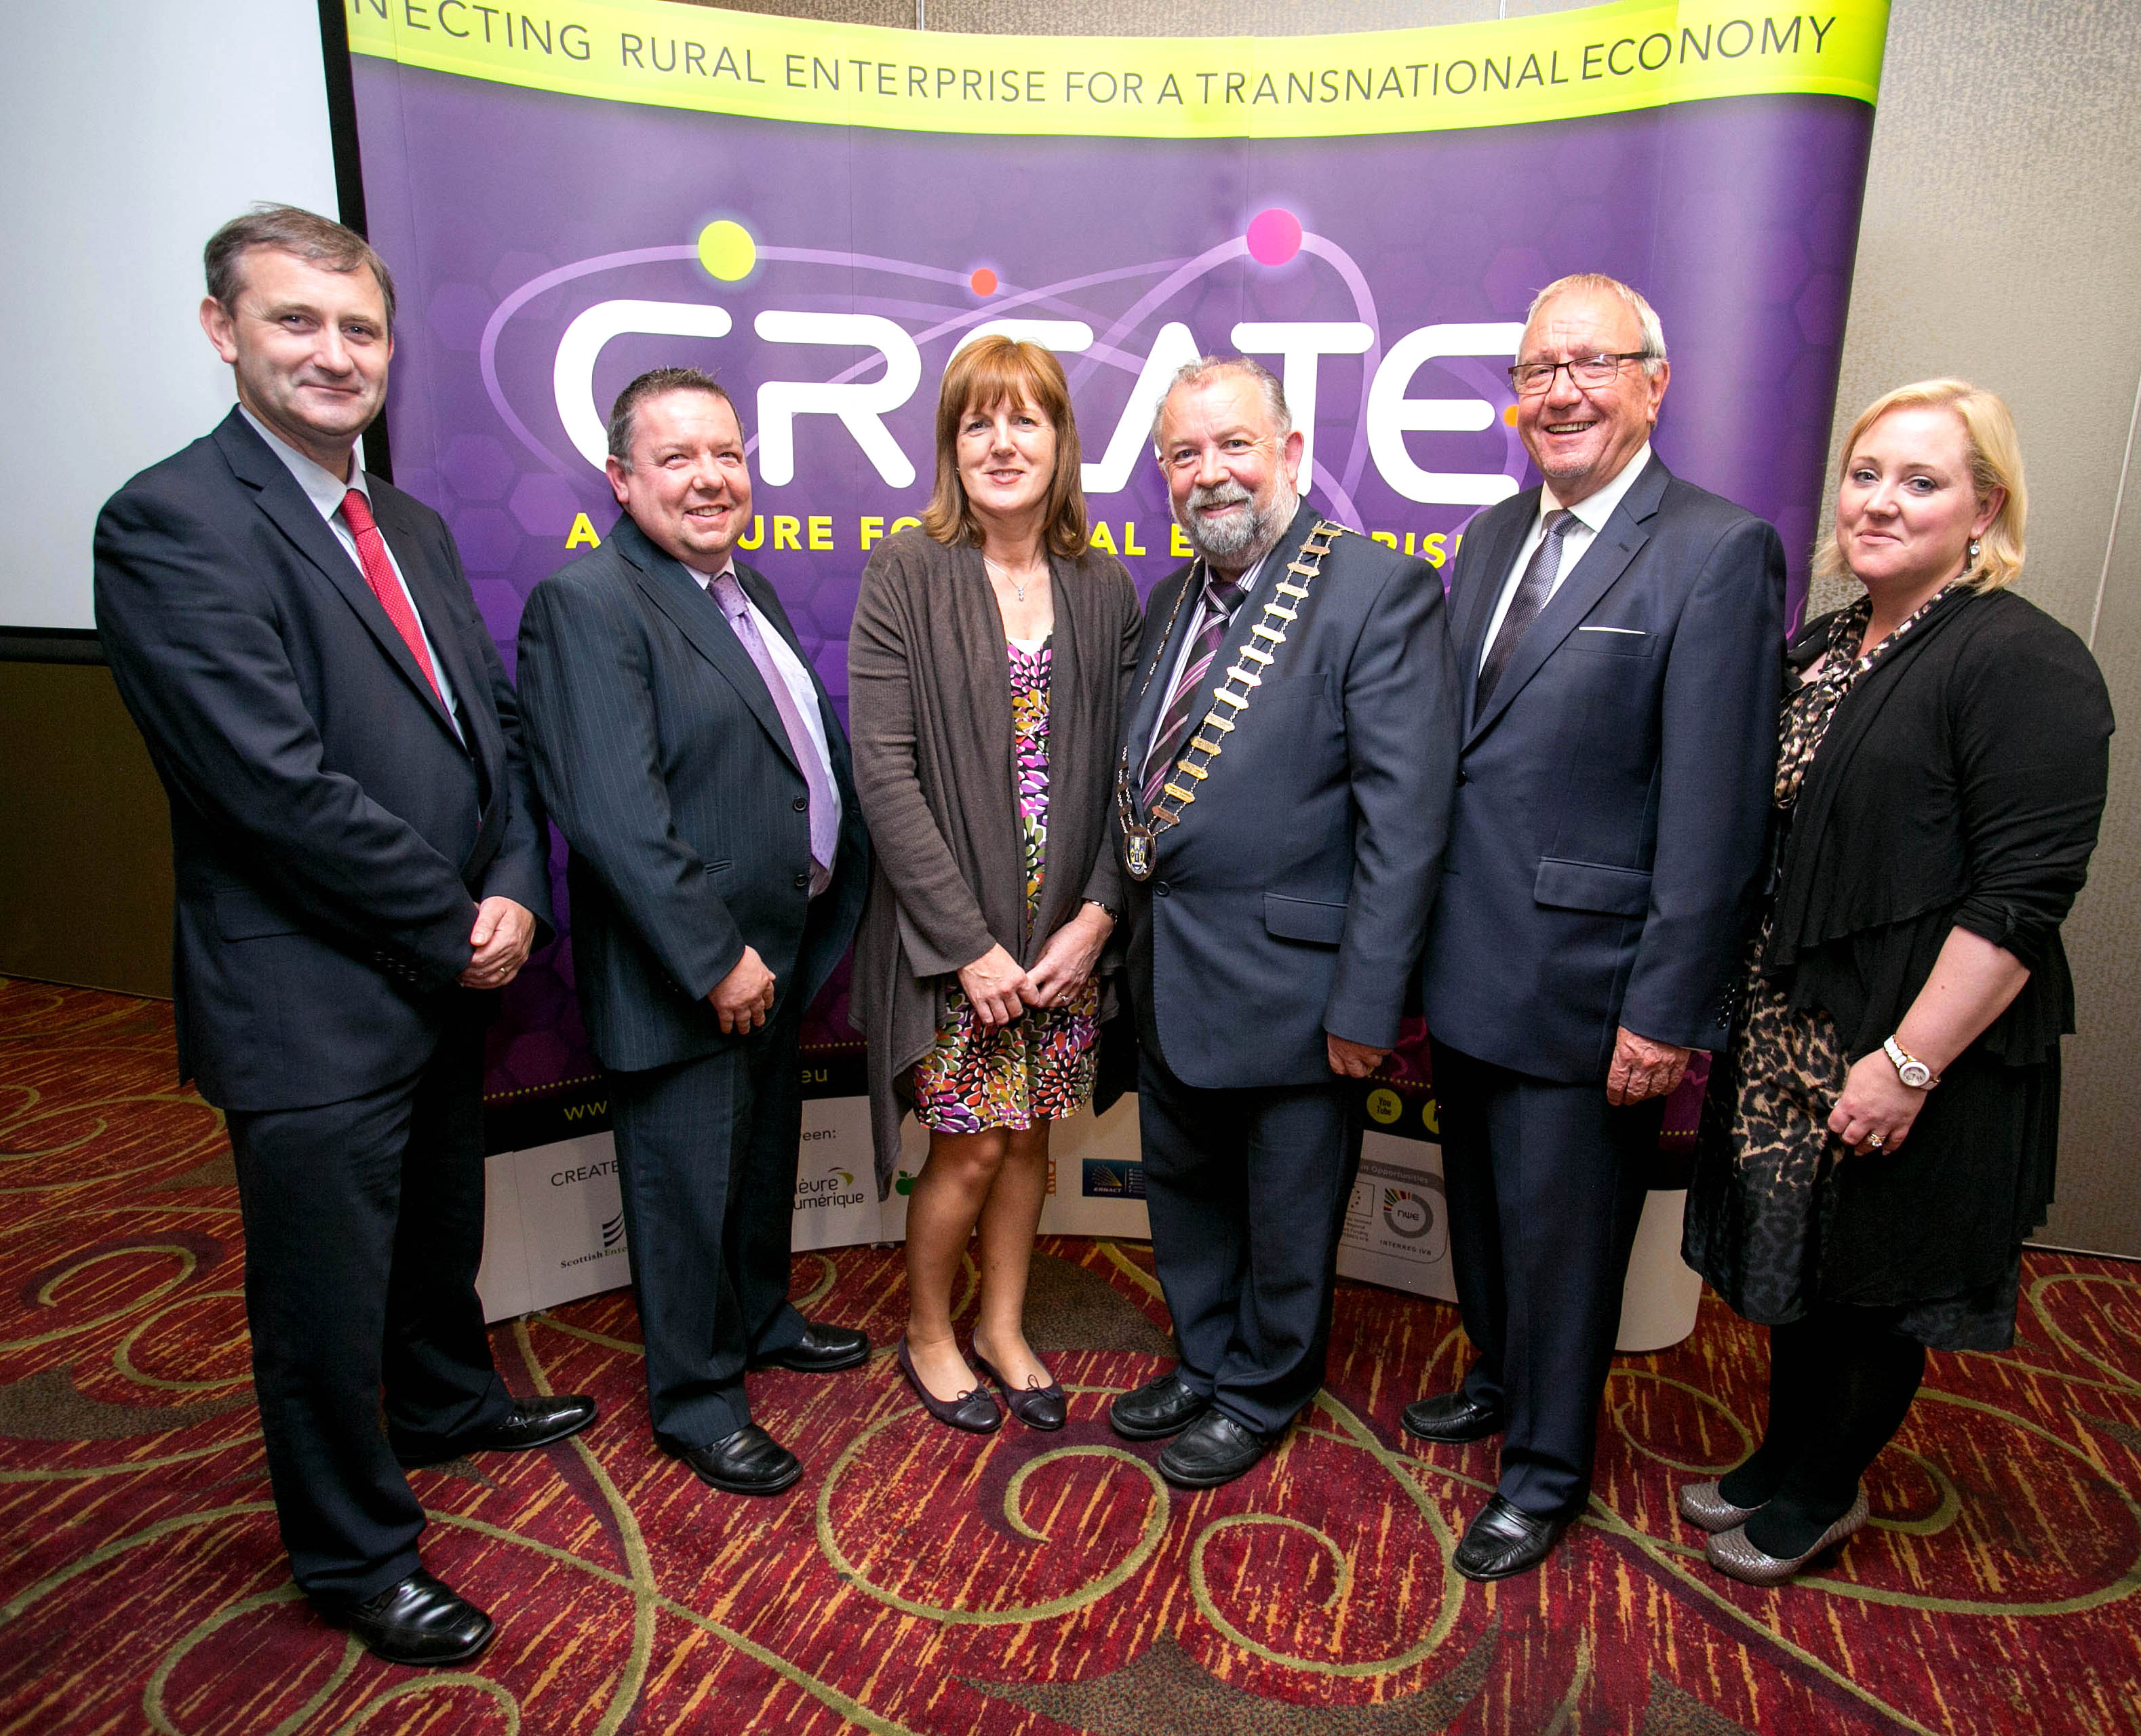 Pictured at the launch of the Create App in Ennis: L-R Anthony Coleman, SERA Mid-West Office; Finbar Tuohy, Clare LEO office; Betty Devaney, Clare LEO office; Cathaoirleach Cllr. John Crowe; Cllr. Graham Powell, Hereford, UK; Sinead Dixon, Clare LEO office.Pic Arthur Ellis.